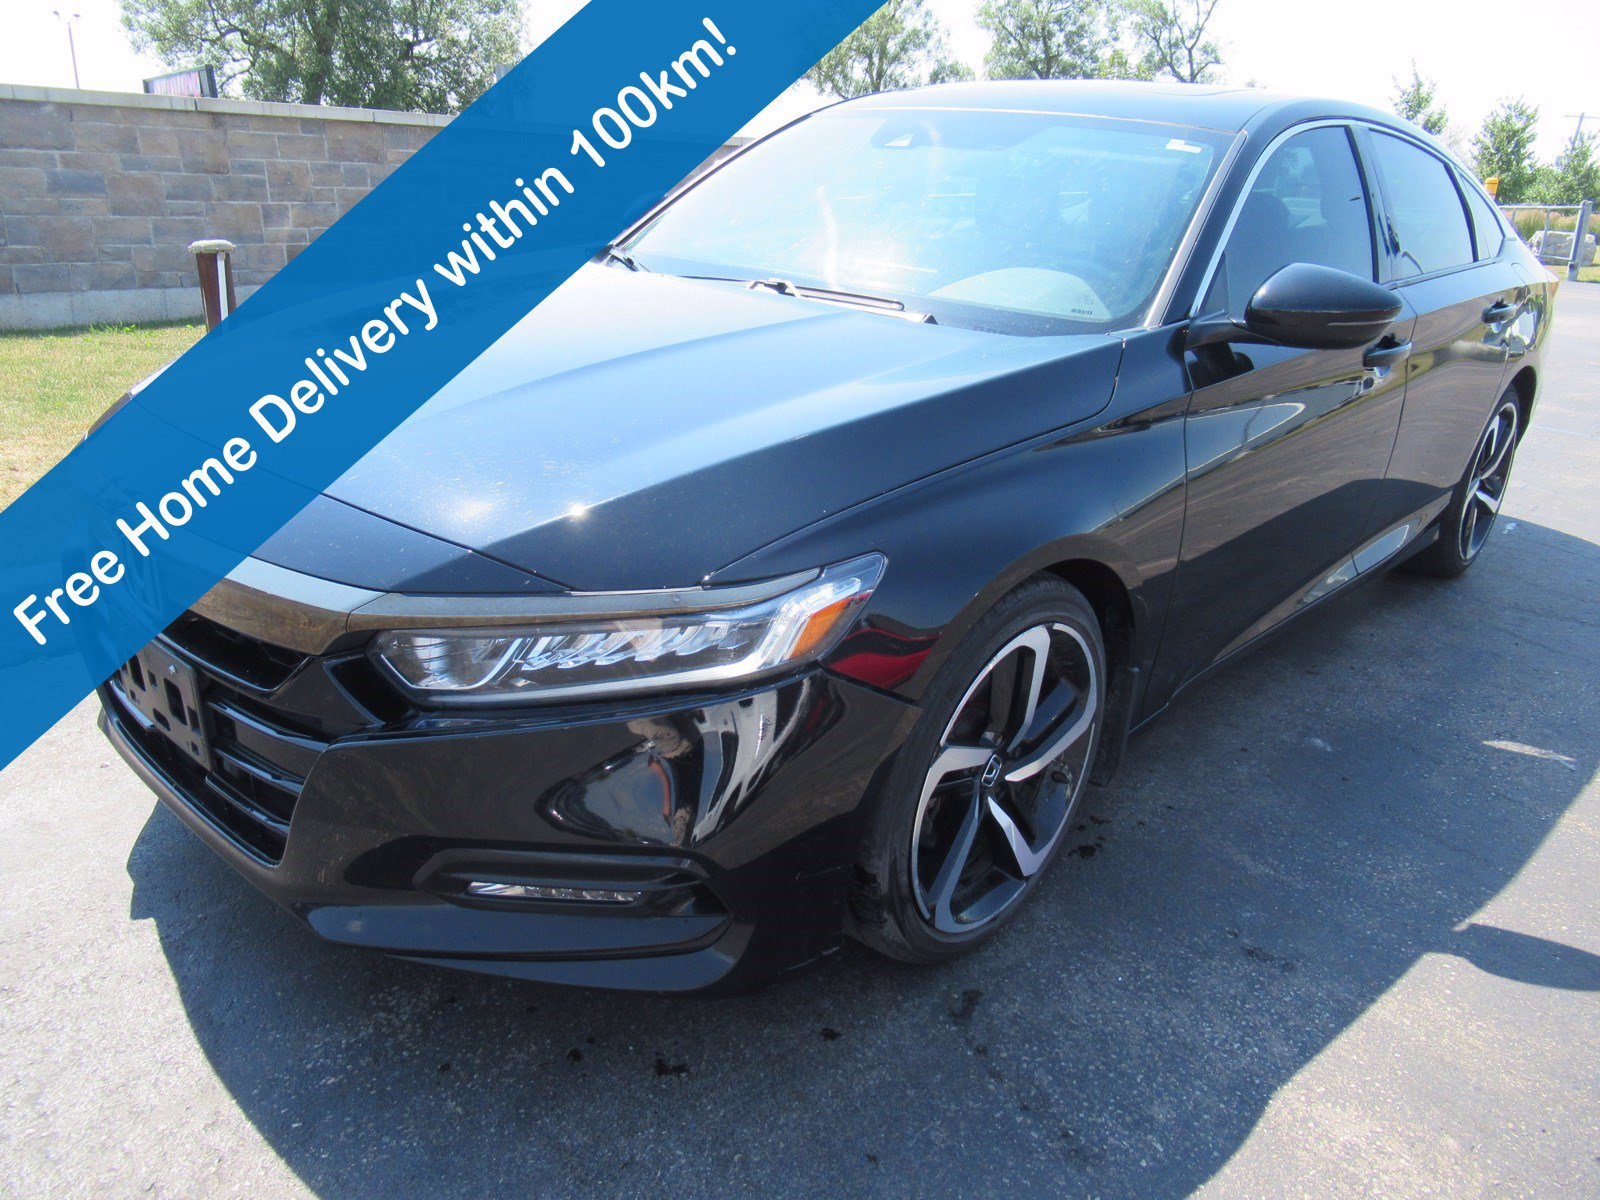 Certified Pre-Owned 2018 Honda Accord Sedan Sport, Leather, Sunroof, Bluetooth, Cruise Control, 19